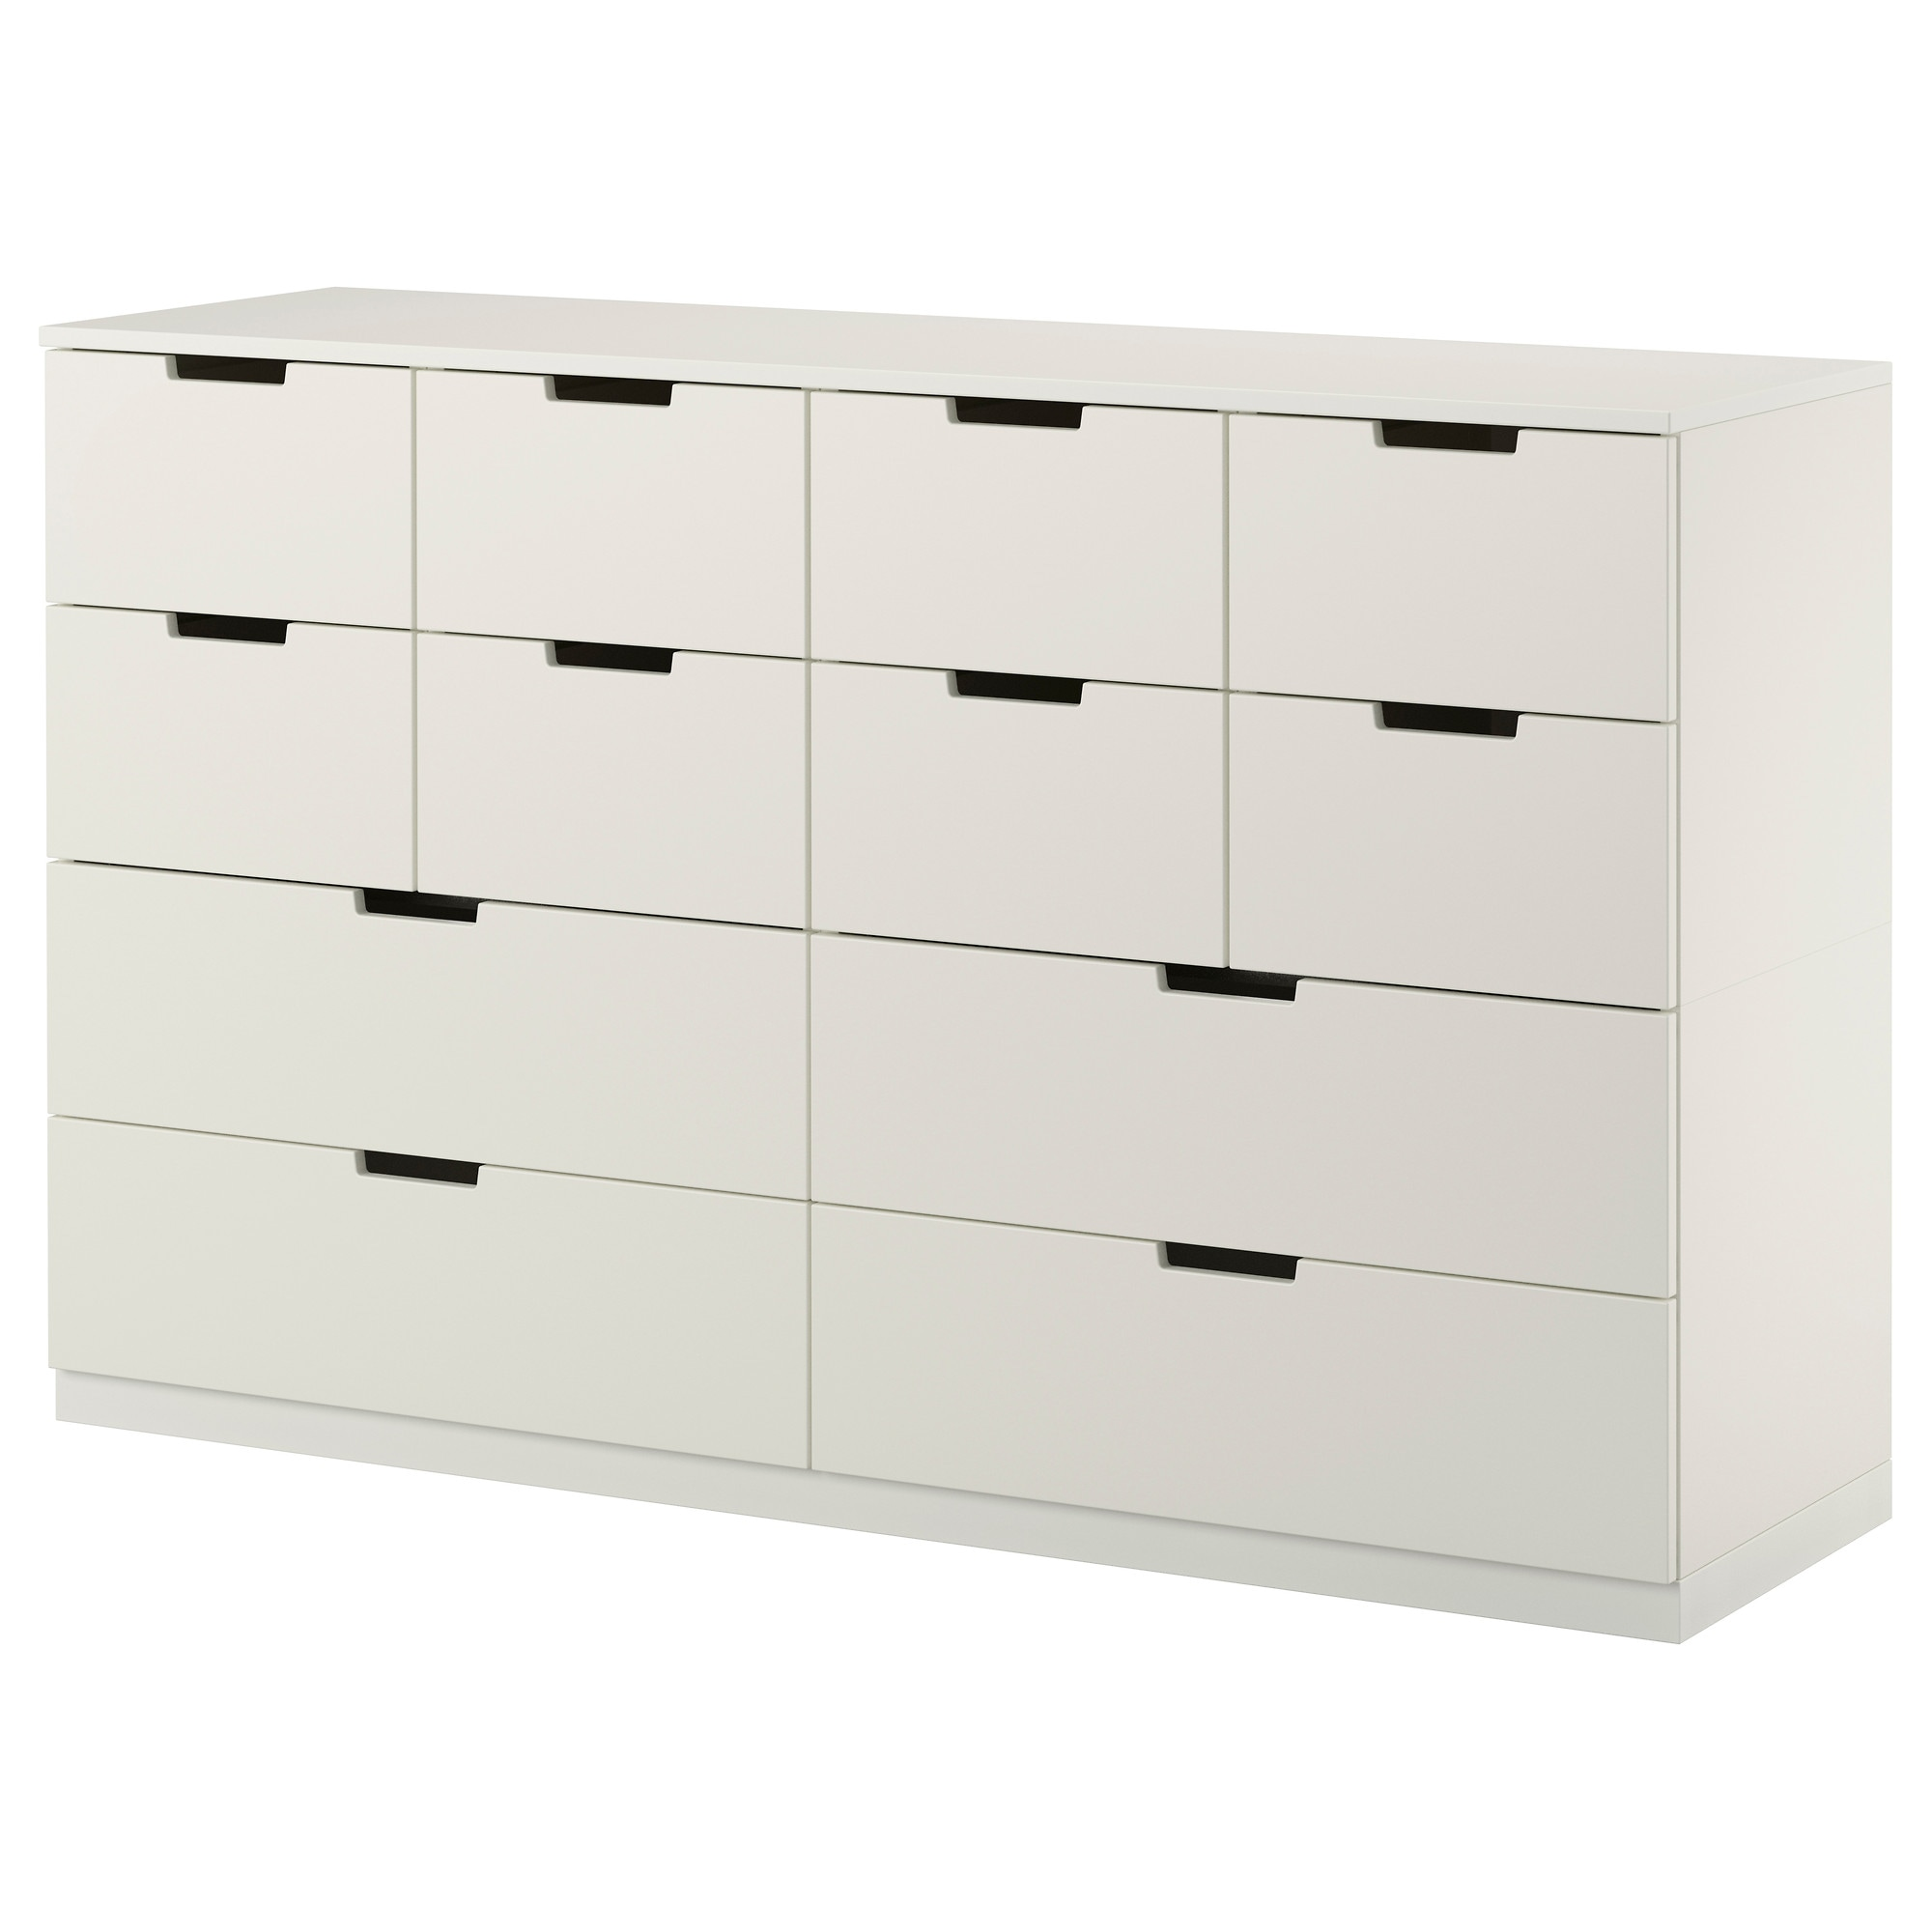 Ikea bedroom furniture chest of drawers - Nordli Chest White Width 63 Depth 16 7 8 Height